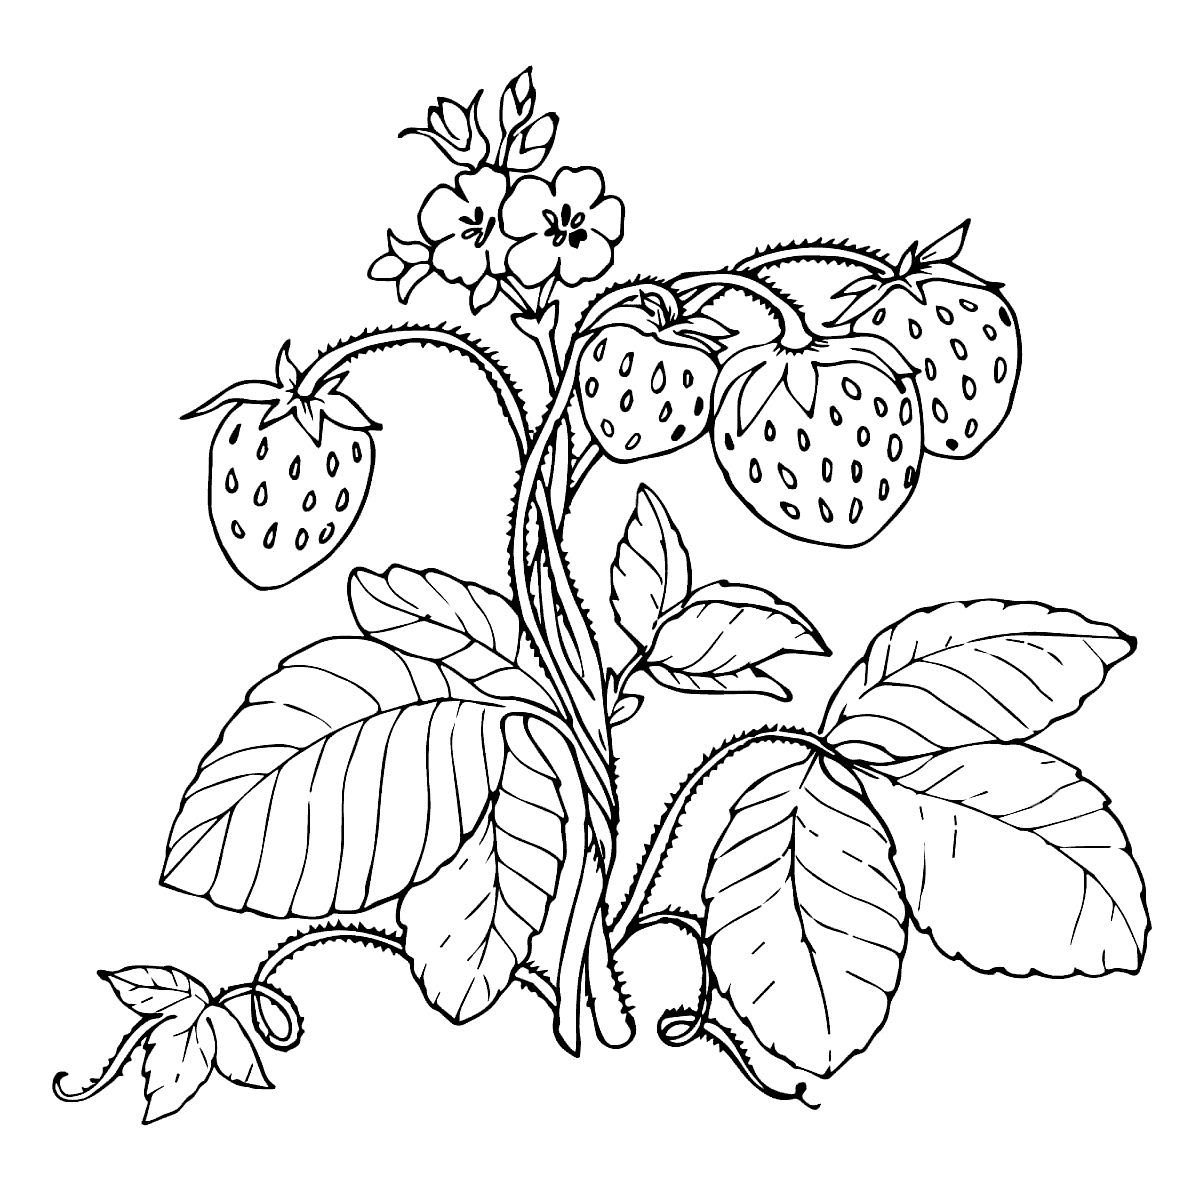 Strawberry Plant Drawing At Getdrawings